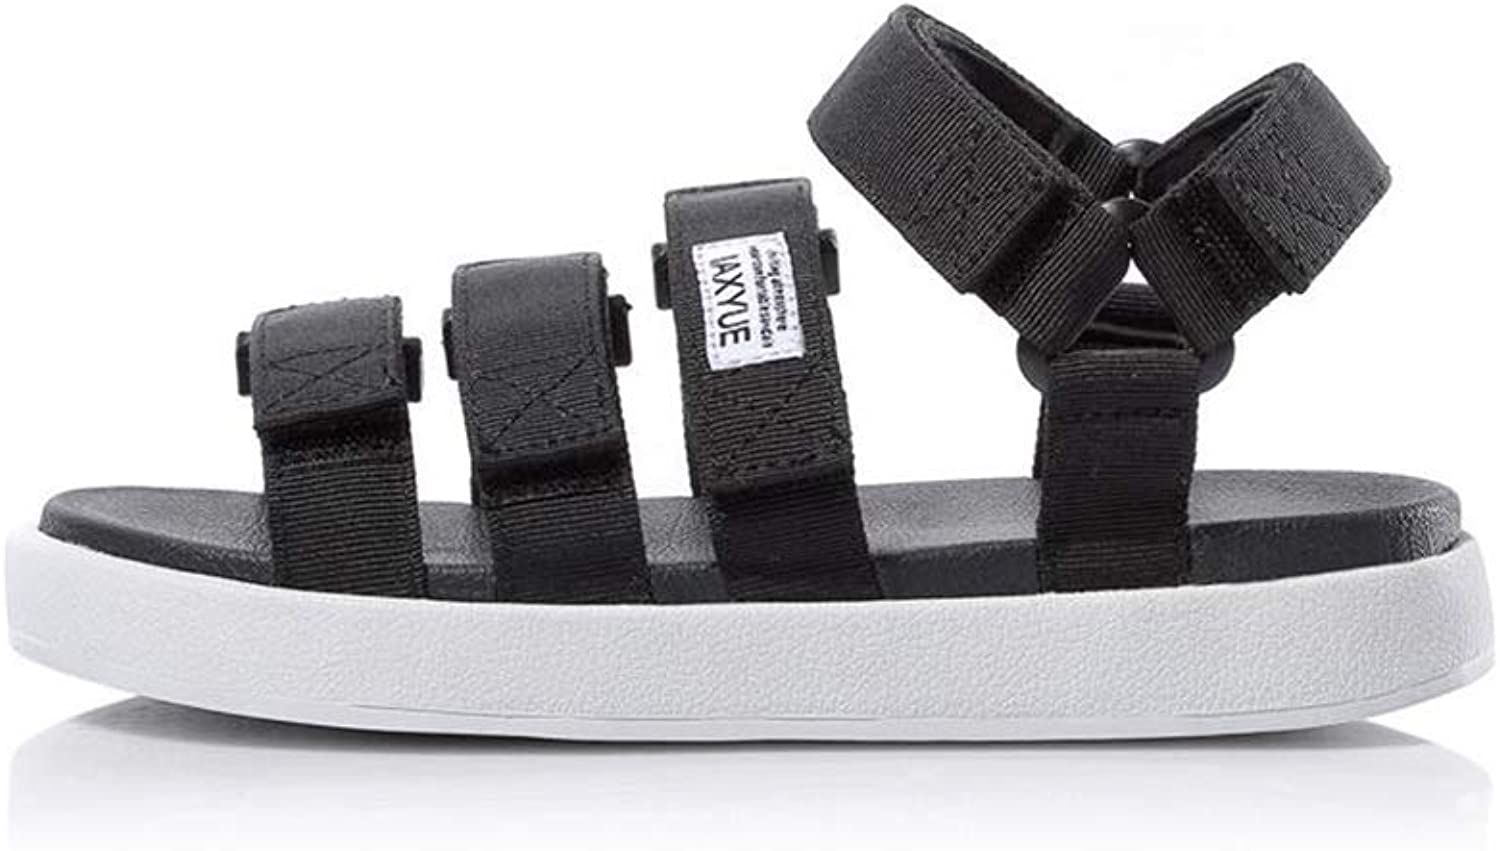 HIAO sandals Sandals shoes Cloth Belt Surface Velcro Breathable Rubber Sole Boy Youth Daily Outdoor Travel Non-slip Beach Black White Interphase Cool (Size   42)